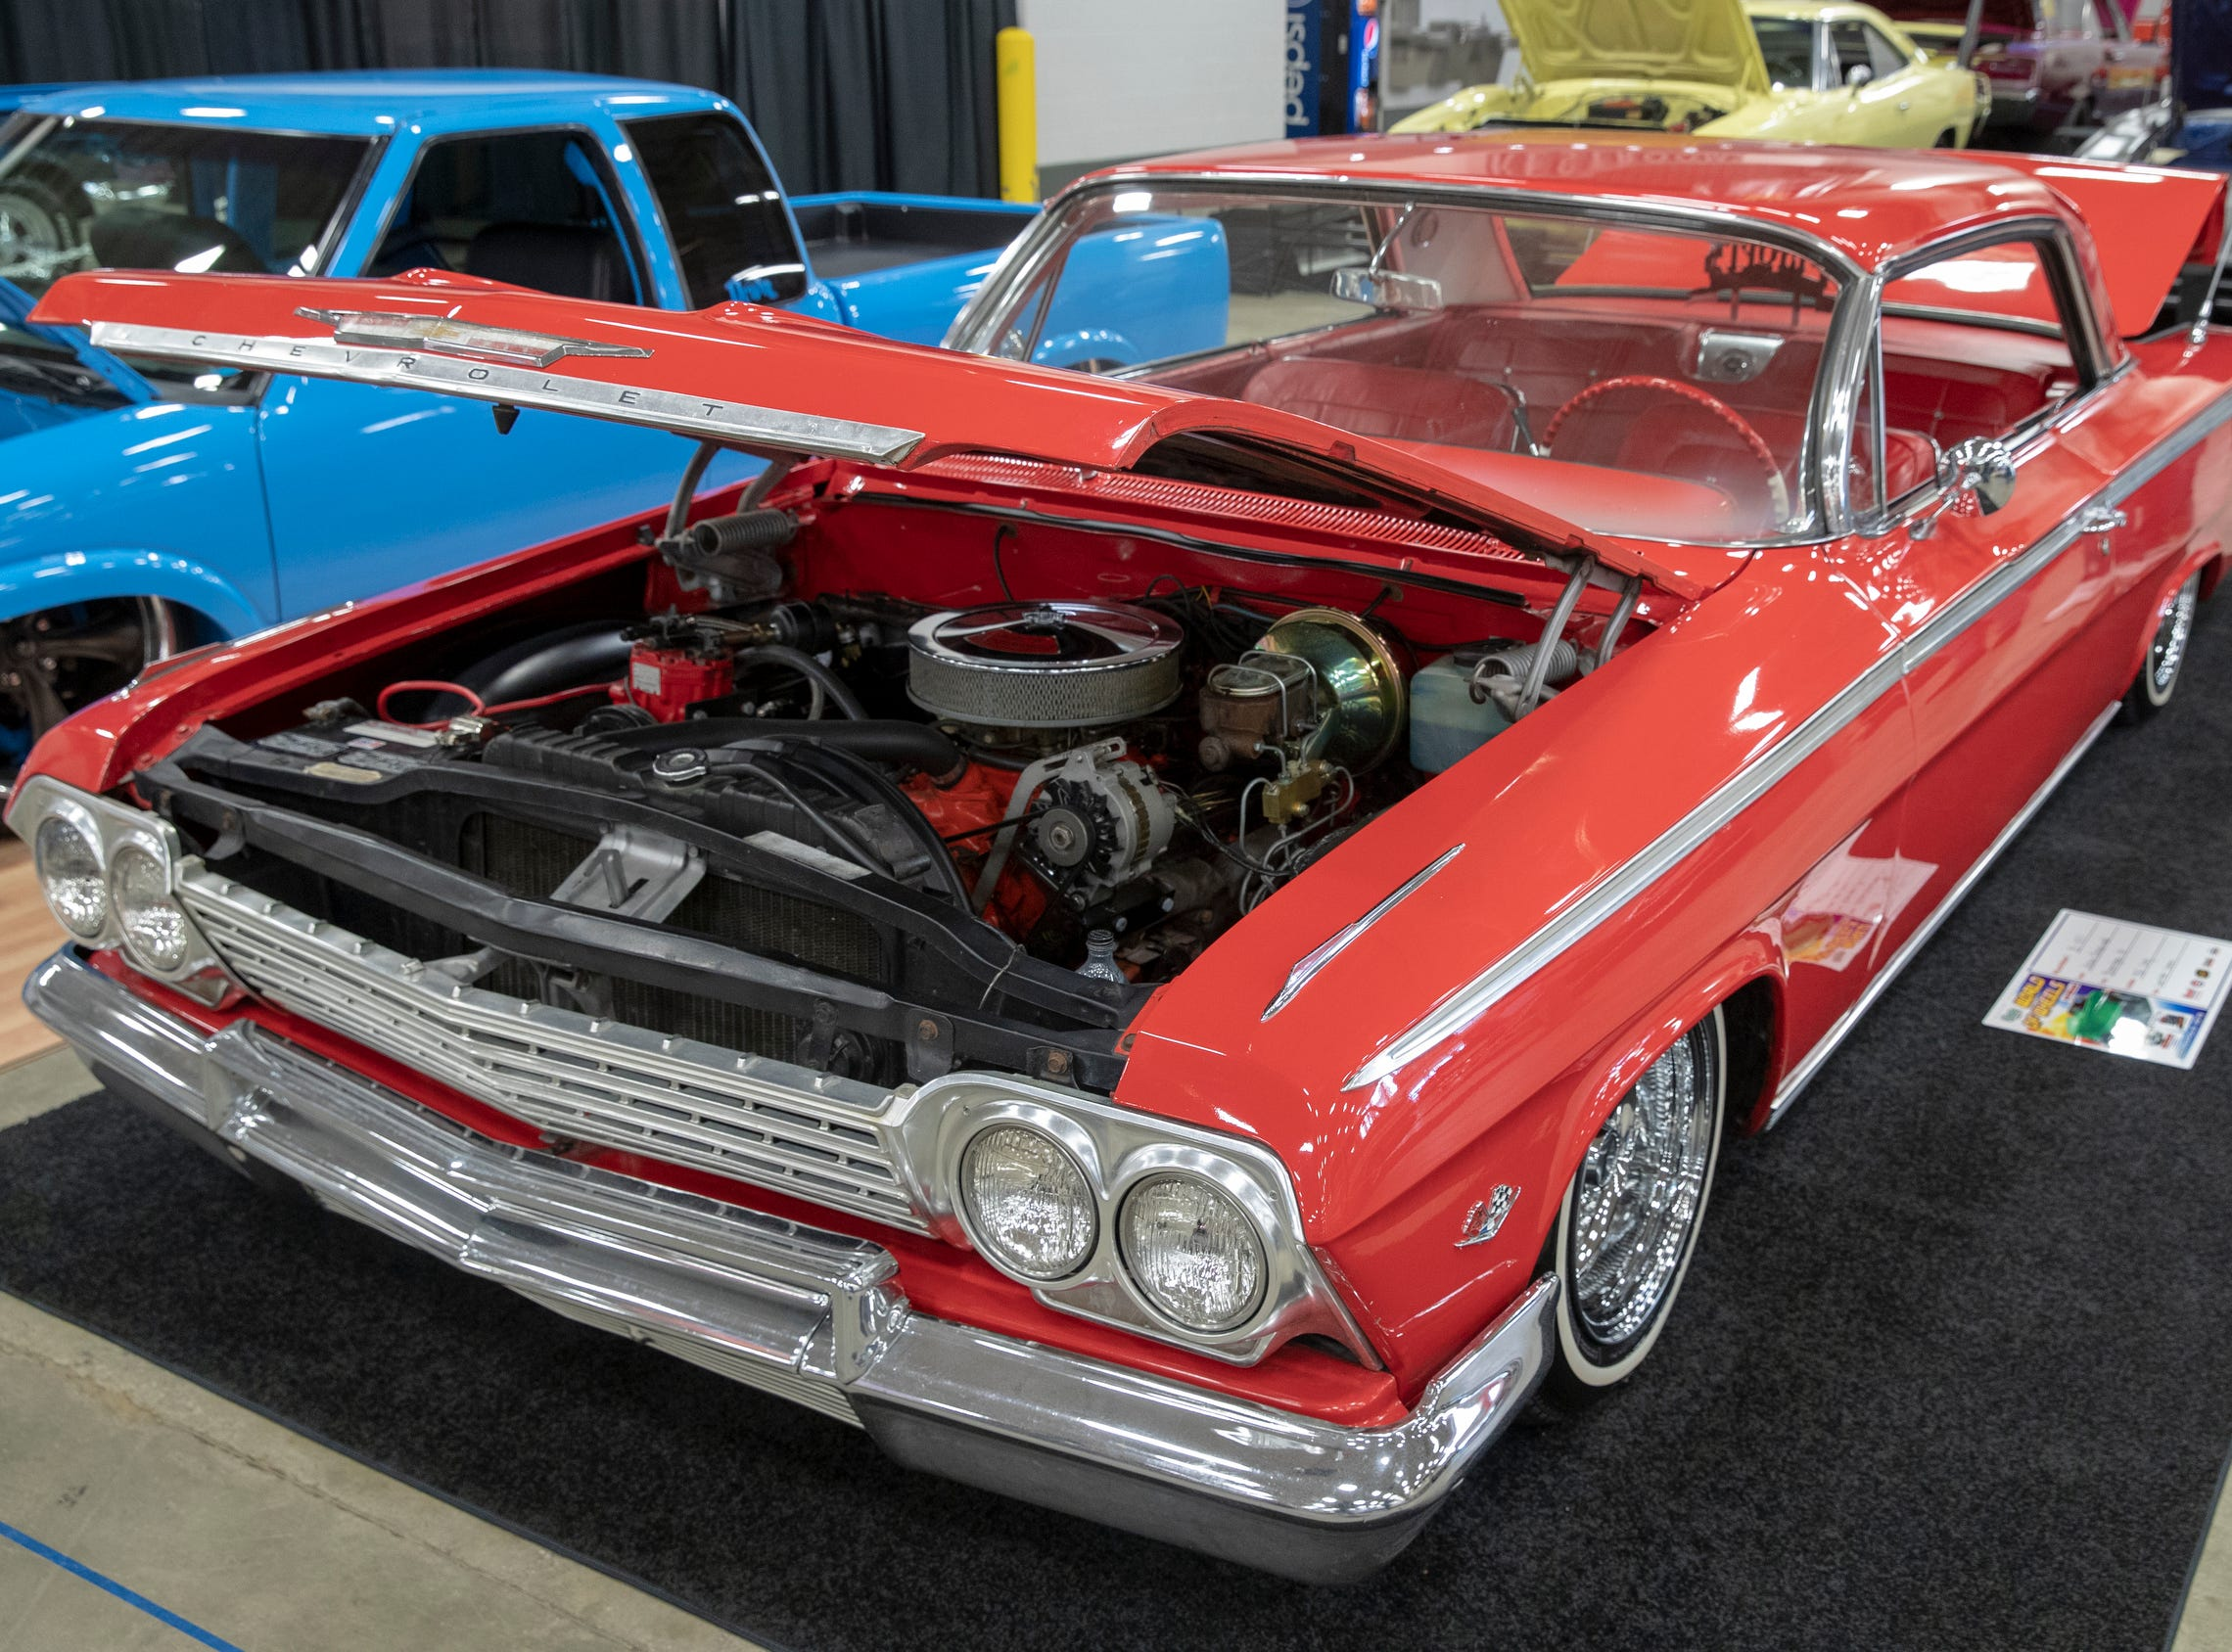 A 1962 Chevy, at World of Wheels at the Indiana State Fairgrounds, Indianapolis, Friday, Feb. 8, 2019. The event runs through the weekend and features four big rooms of stock and heavily customized cars.